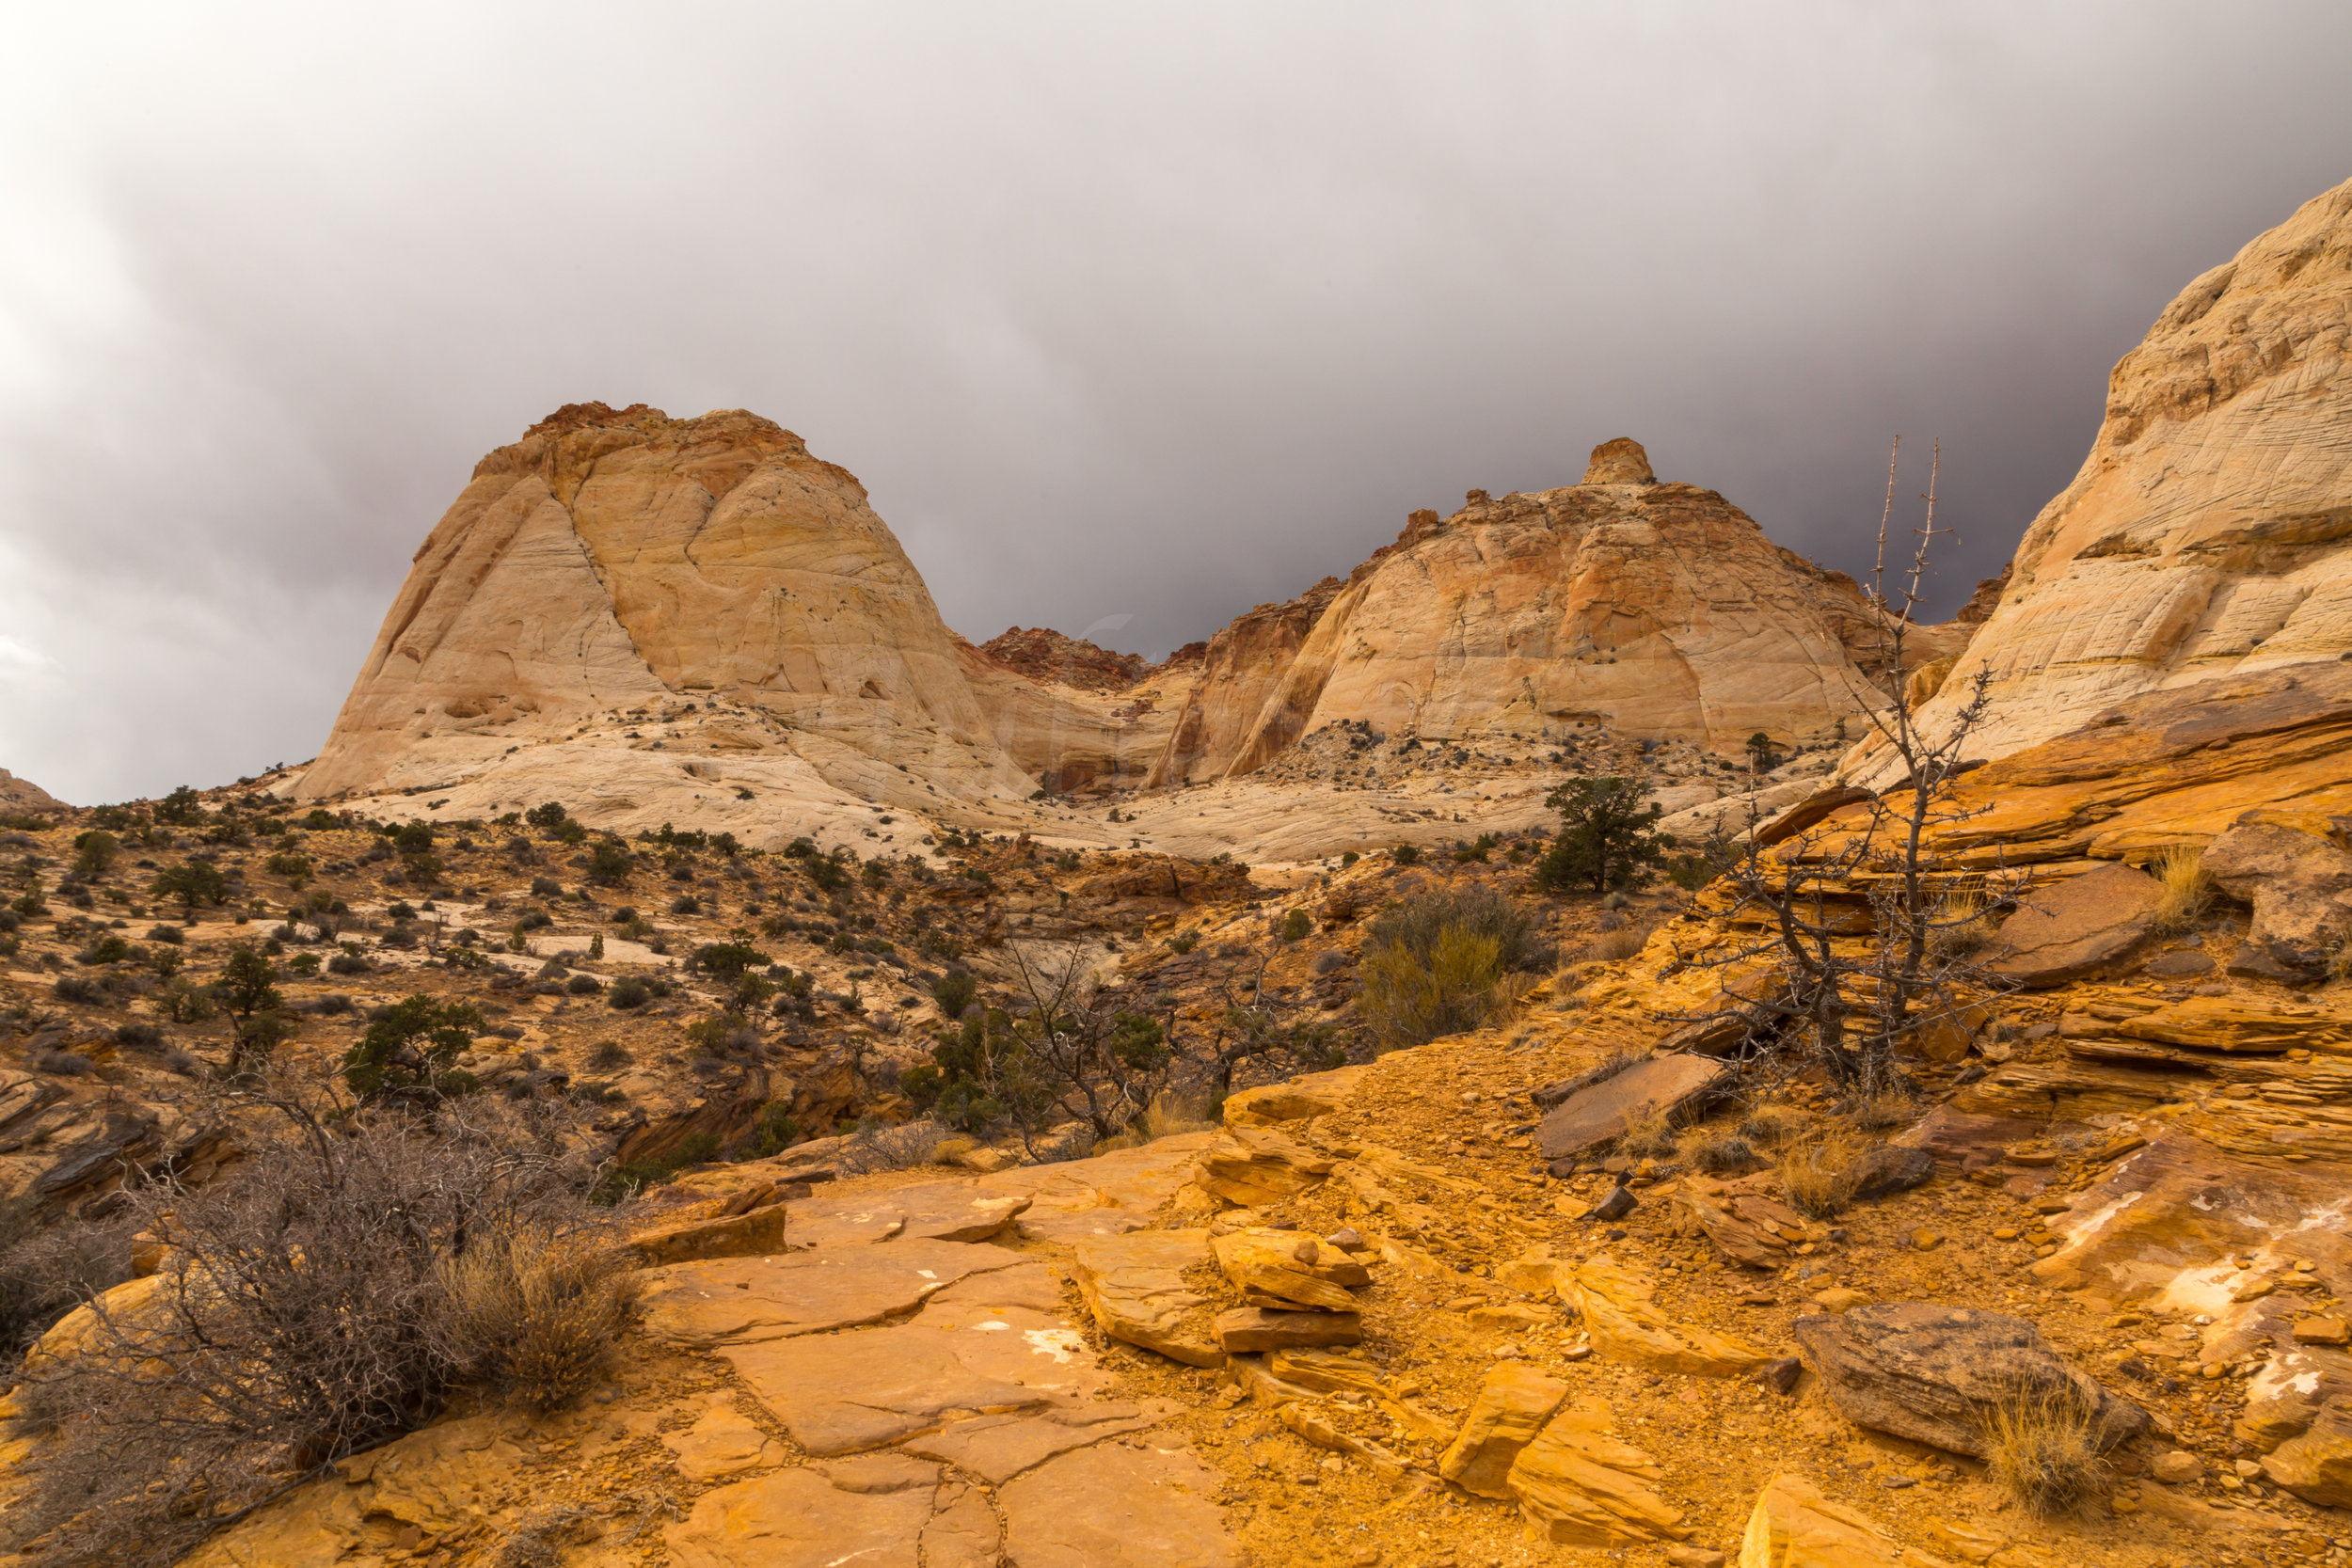 Capitol Reef National Park, Image # 0352